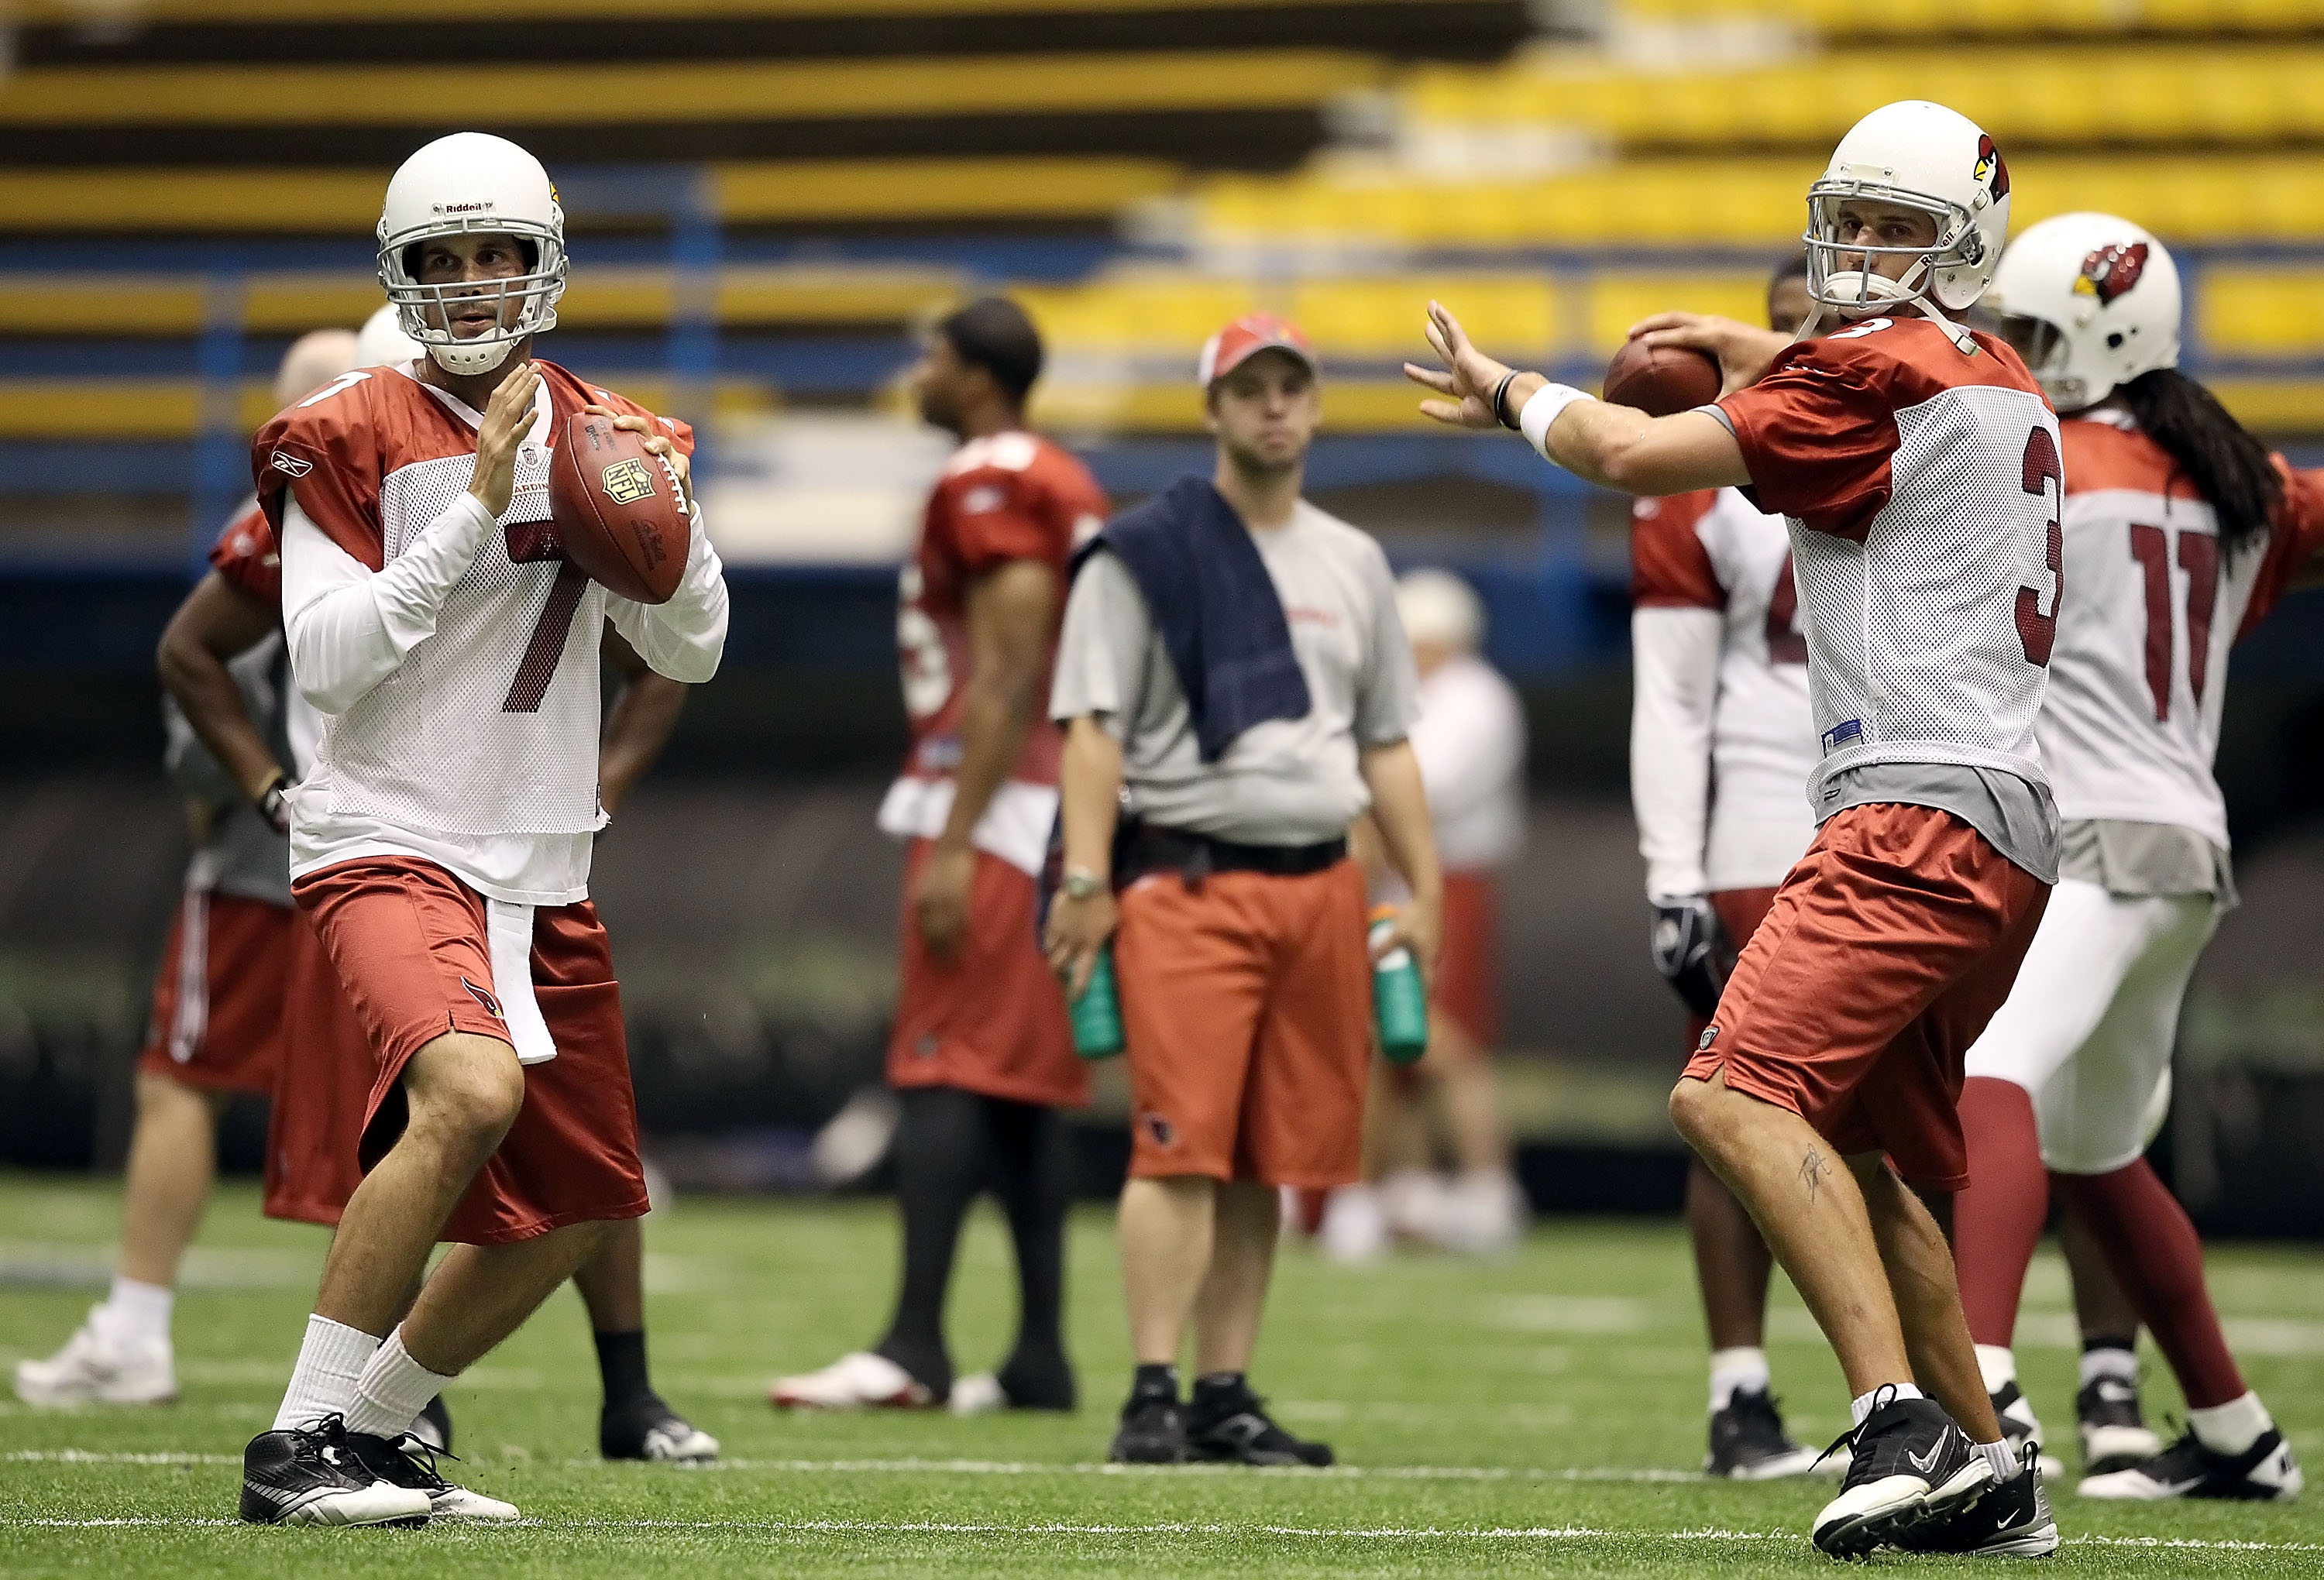 FLAGSTAFF, AZ - AUGUST 02:  Quarterbacks Matt Leinart #7 and Derek Anderson #3 of the Arizona Cardinals practice in the team training camp at Northern Arizona University Walkup Skydome on August 2, 2010 in Flagstaff, Arizona.  (Photo by Christian Petersen